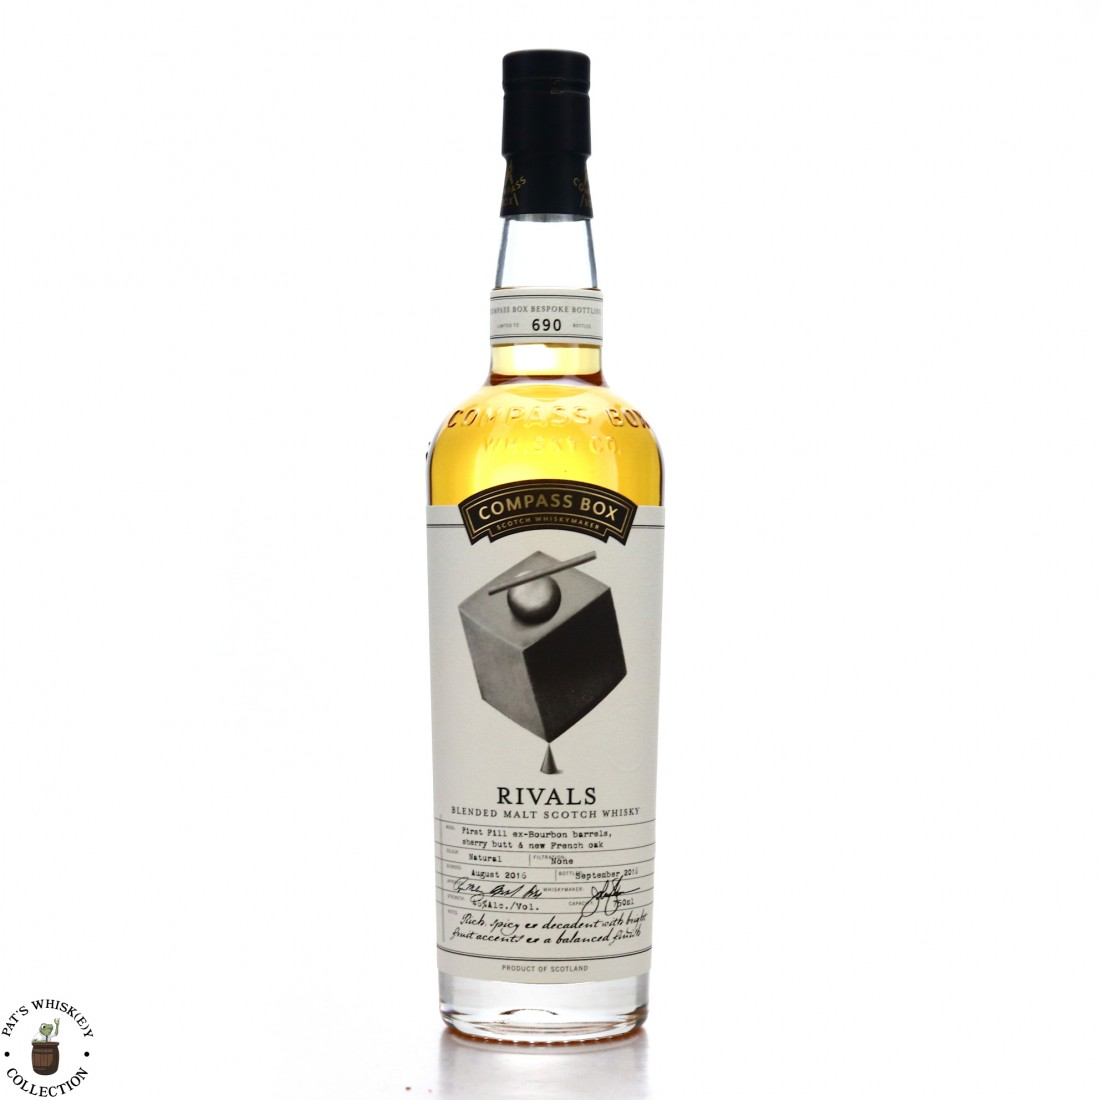 Compass Box Rivals 75cl / US